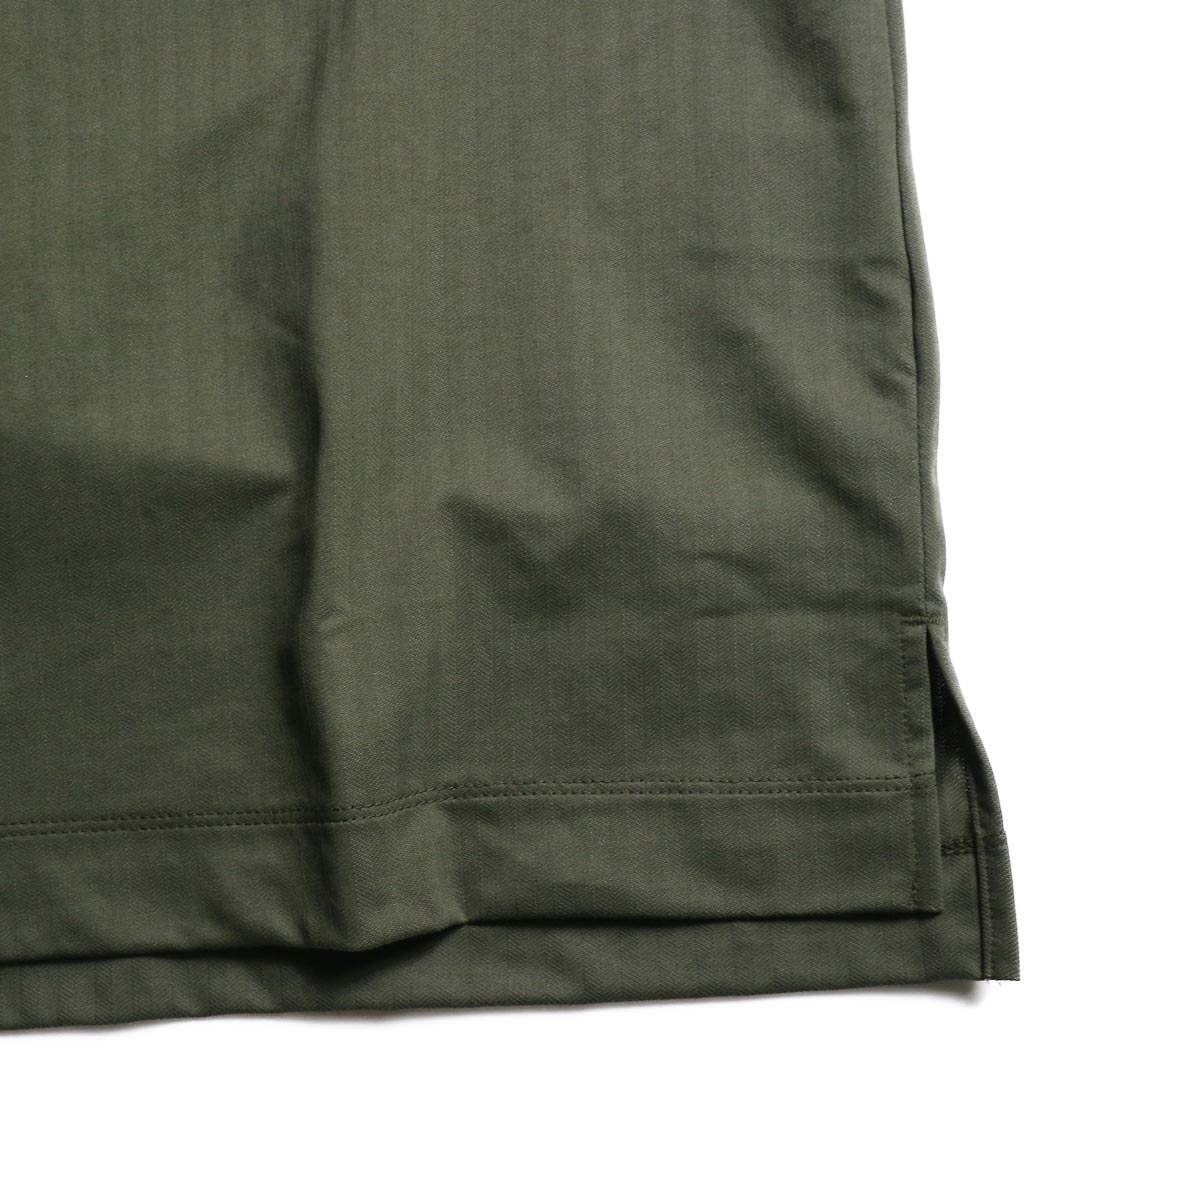 CURLY / SALFORD 3B SS HENLEY (Olive HB)スリット